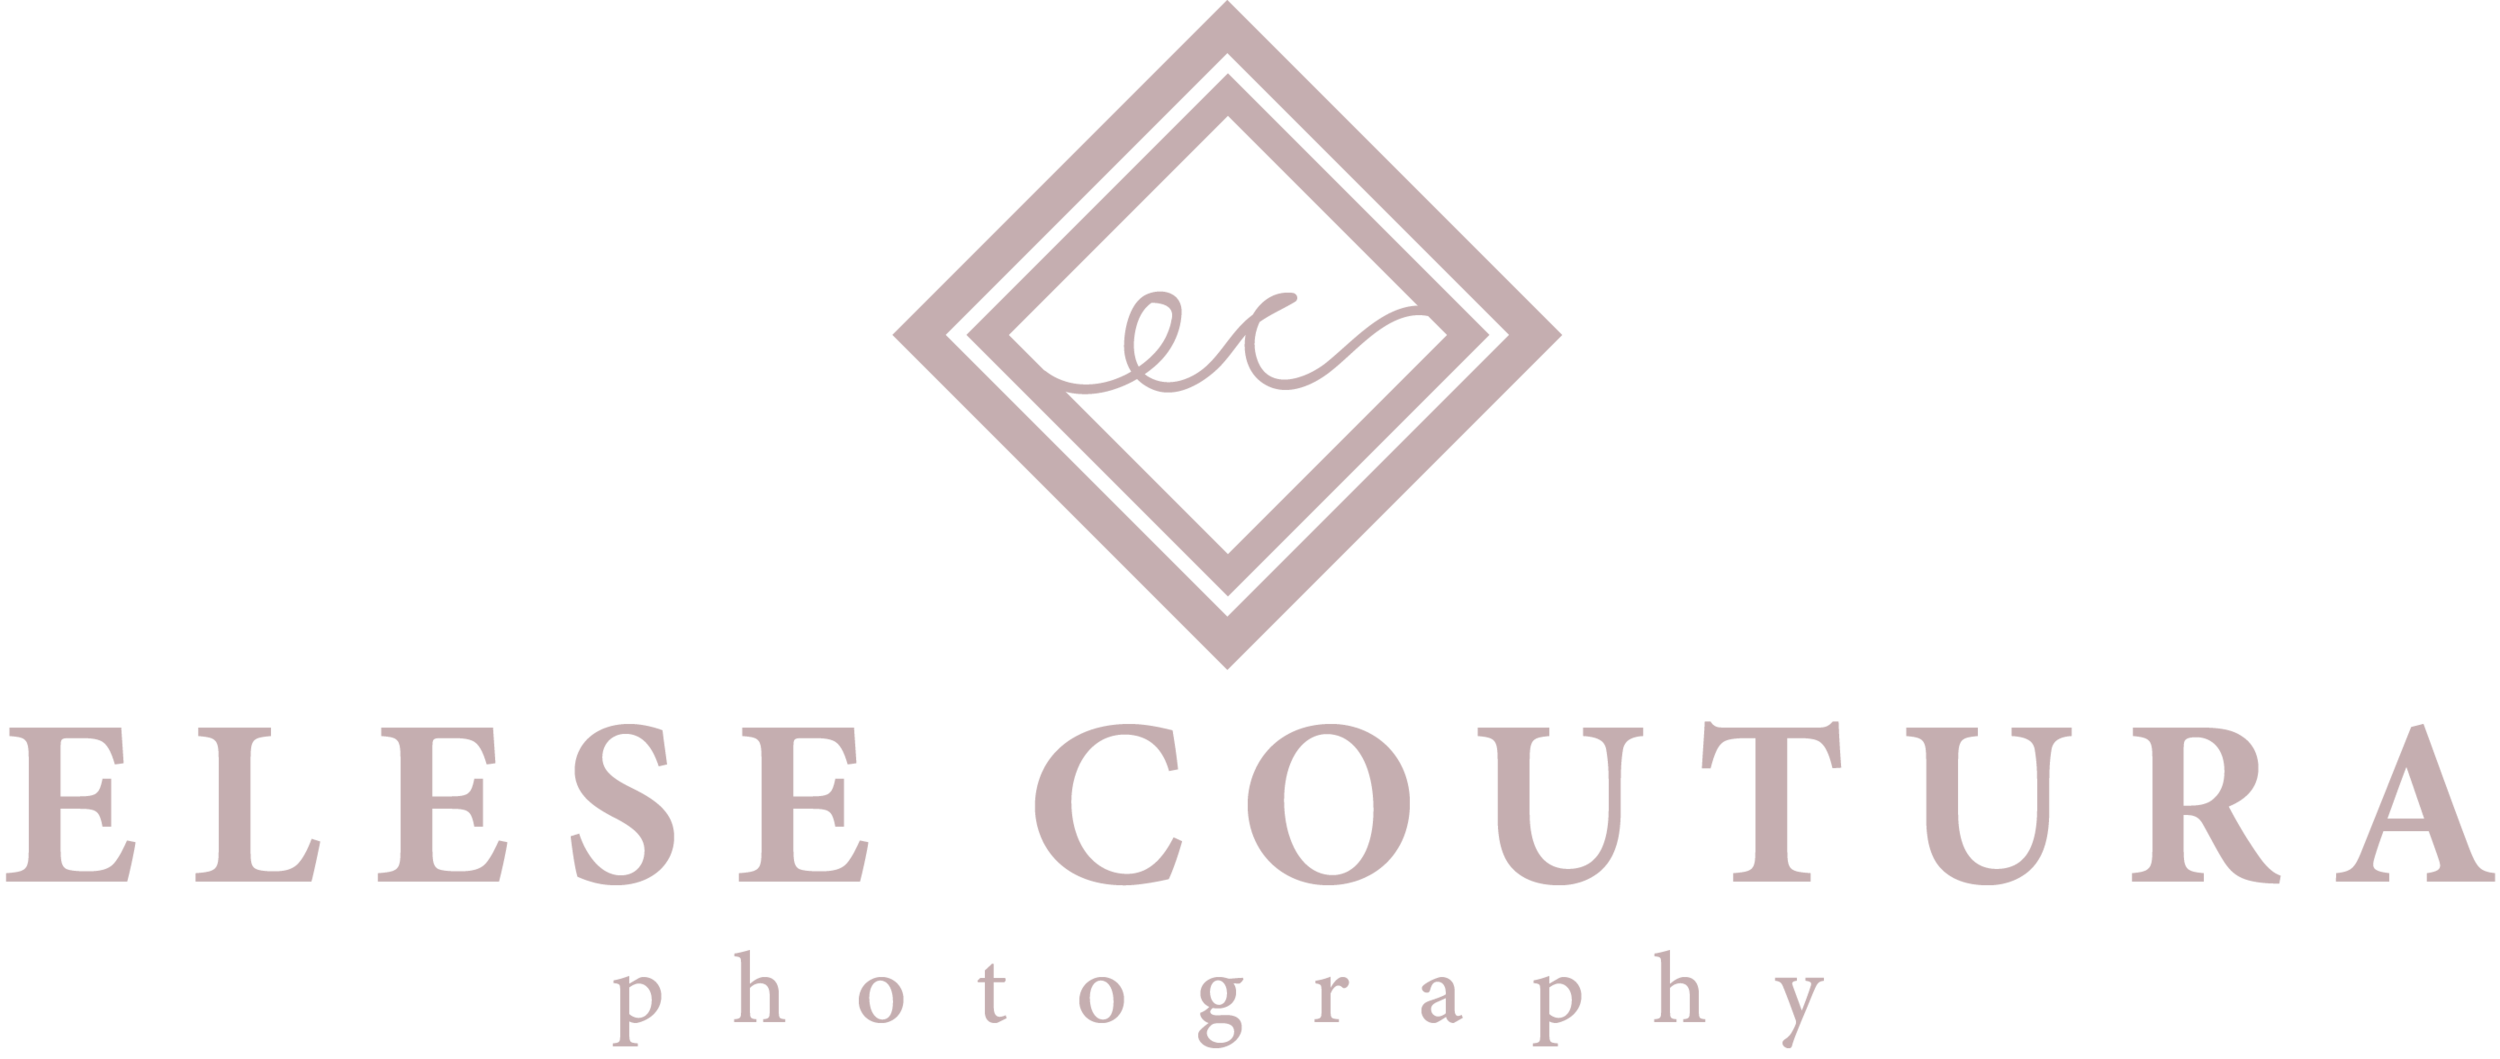 Elese Coutura Photography